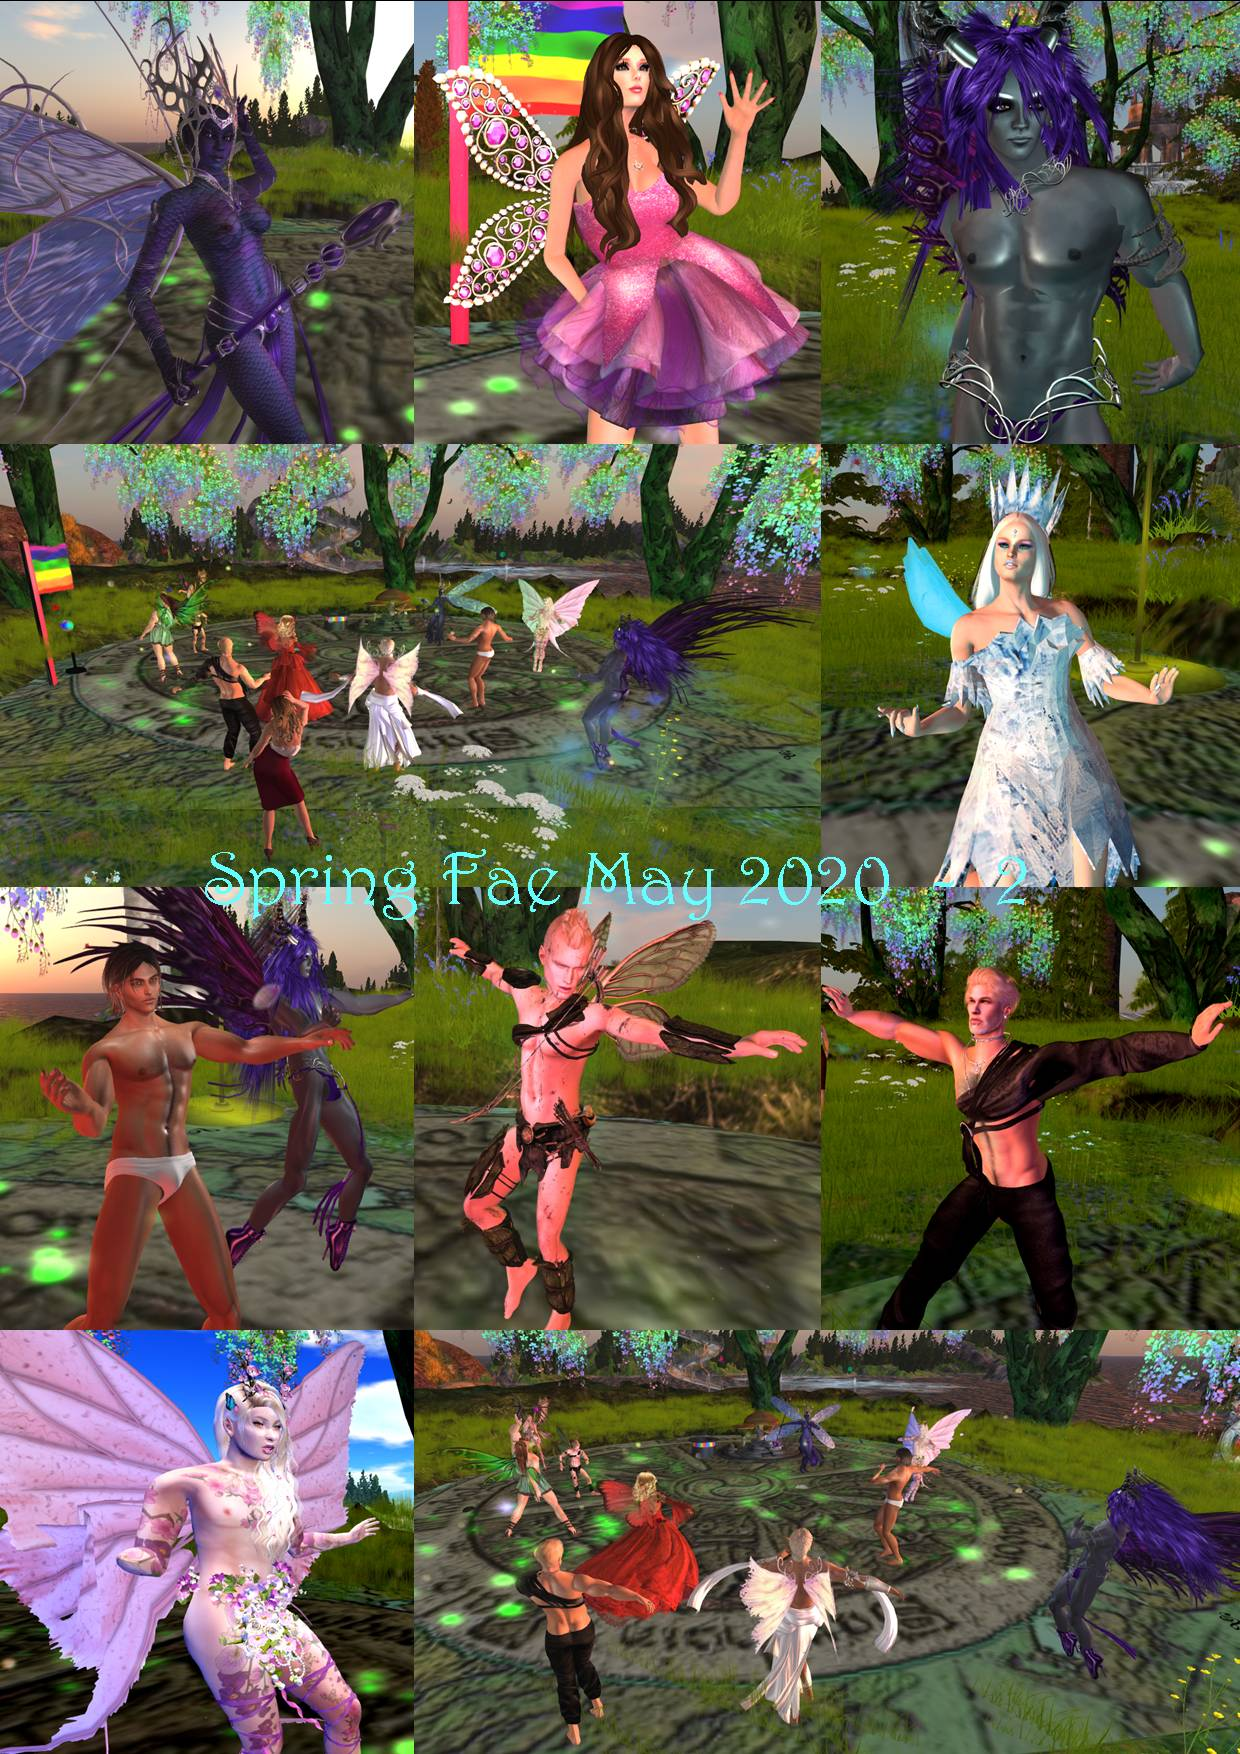 SPRING FAE COLLAGE MAY 2020 - 2